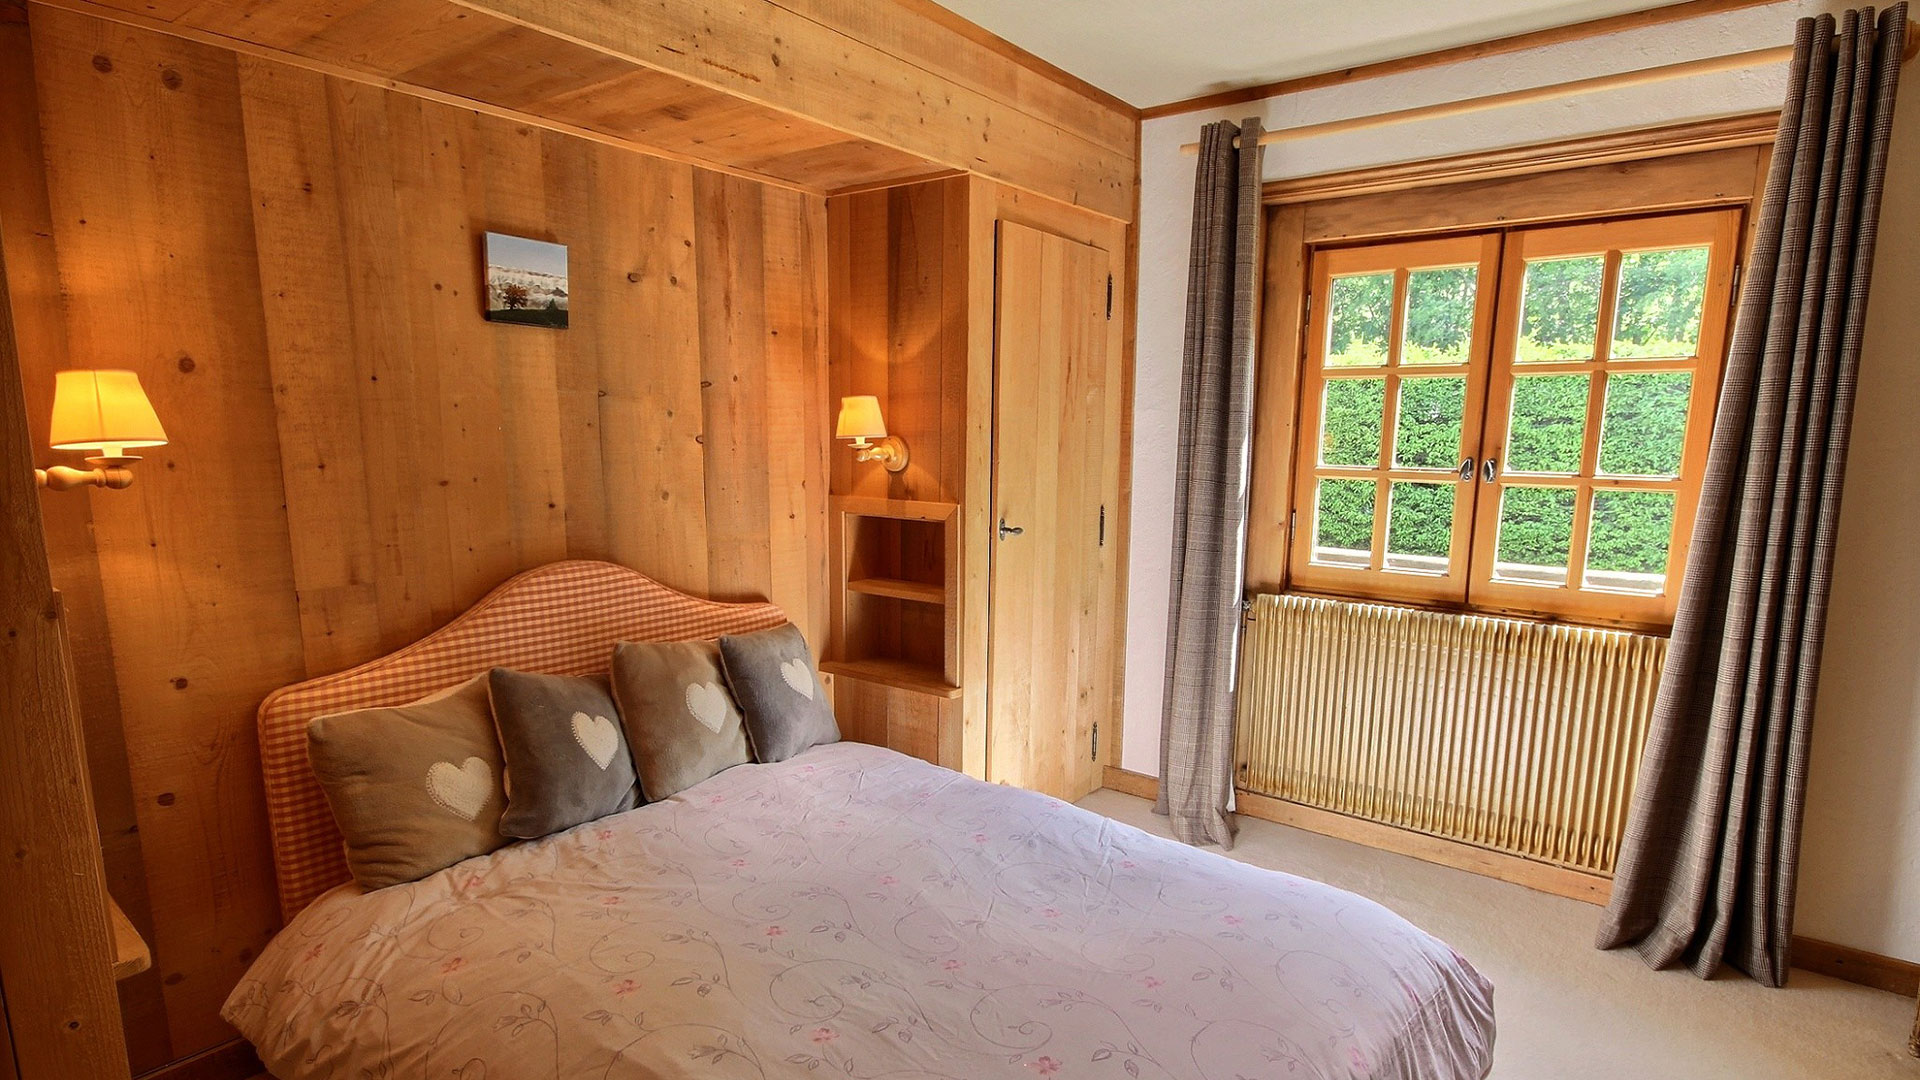 Chalet Rochefort Apartments, France